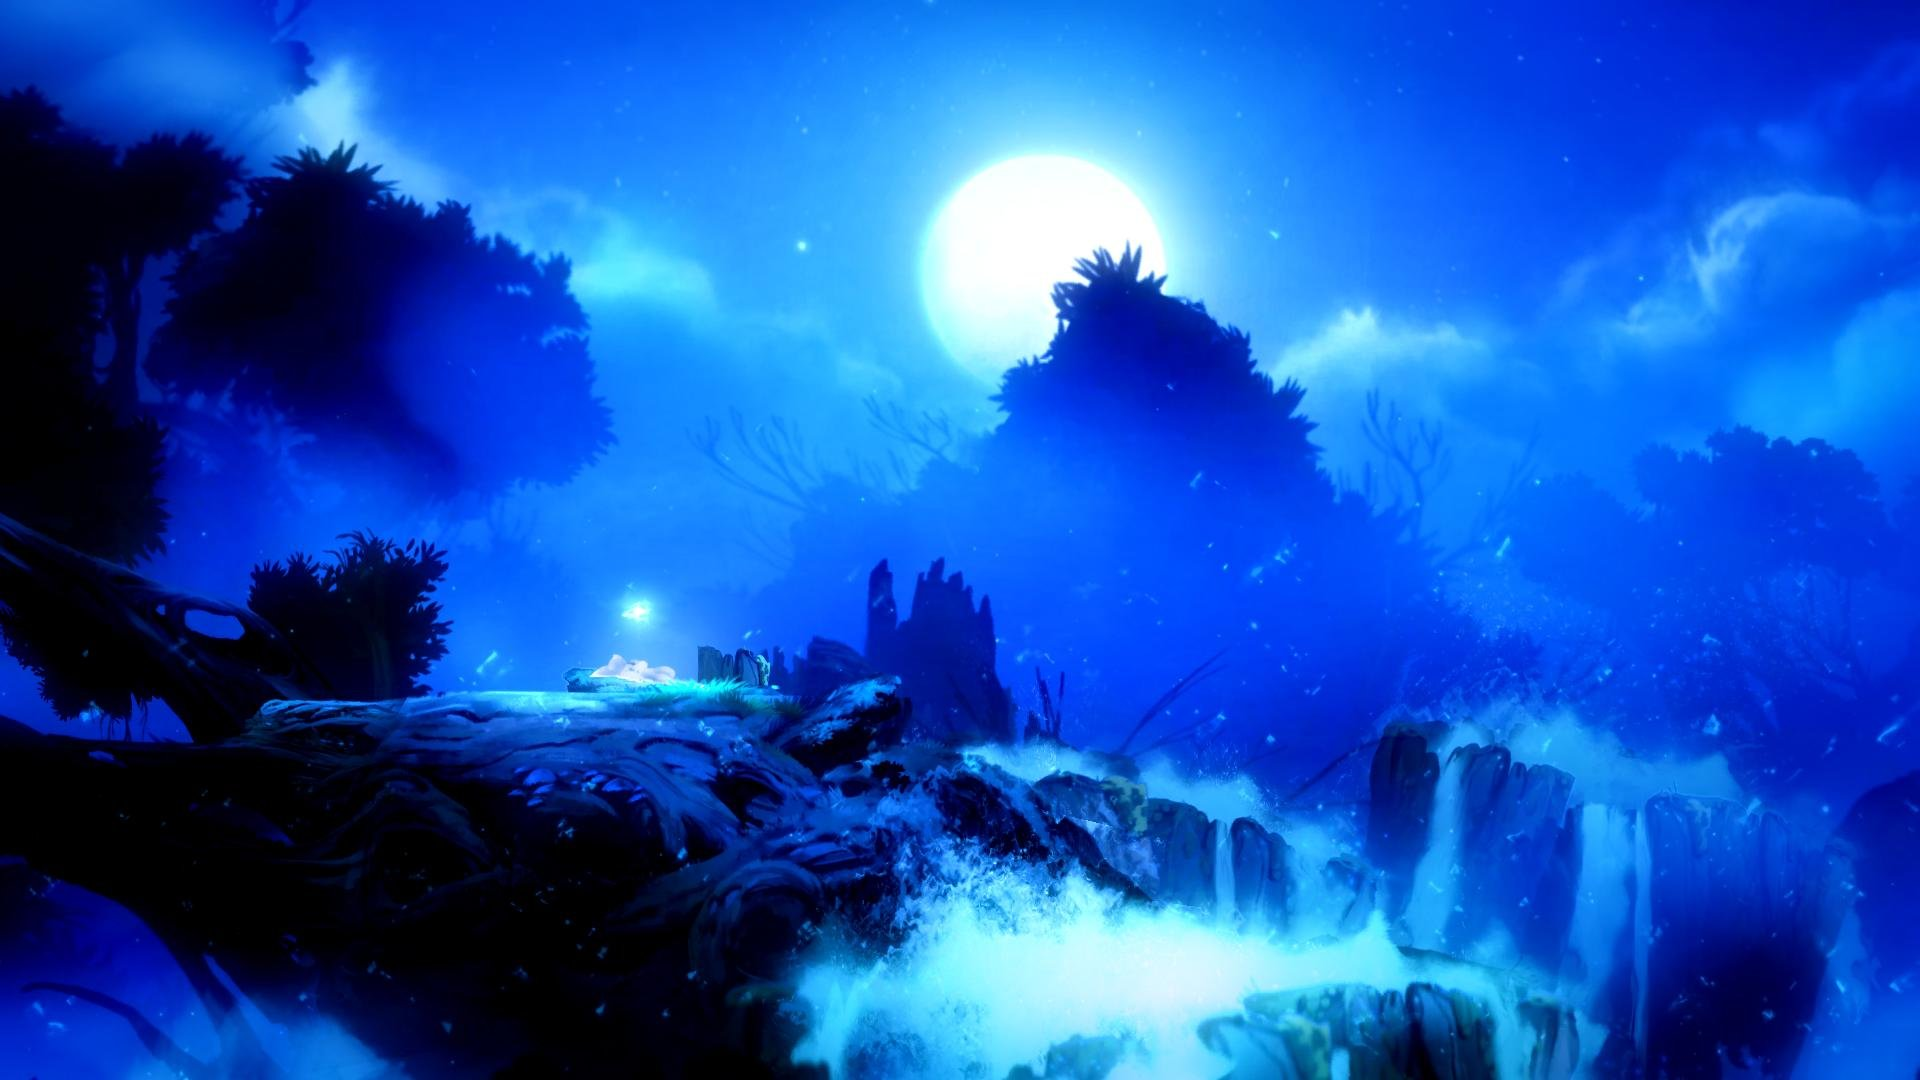 Free Download Ori And The Blind Forest Wallpapers Cool Ori And The